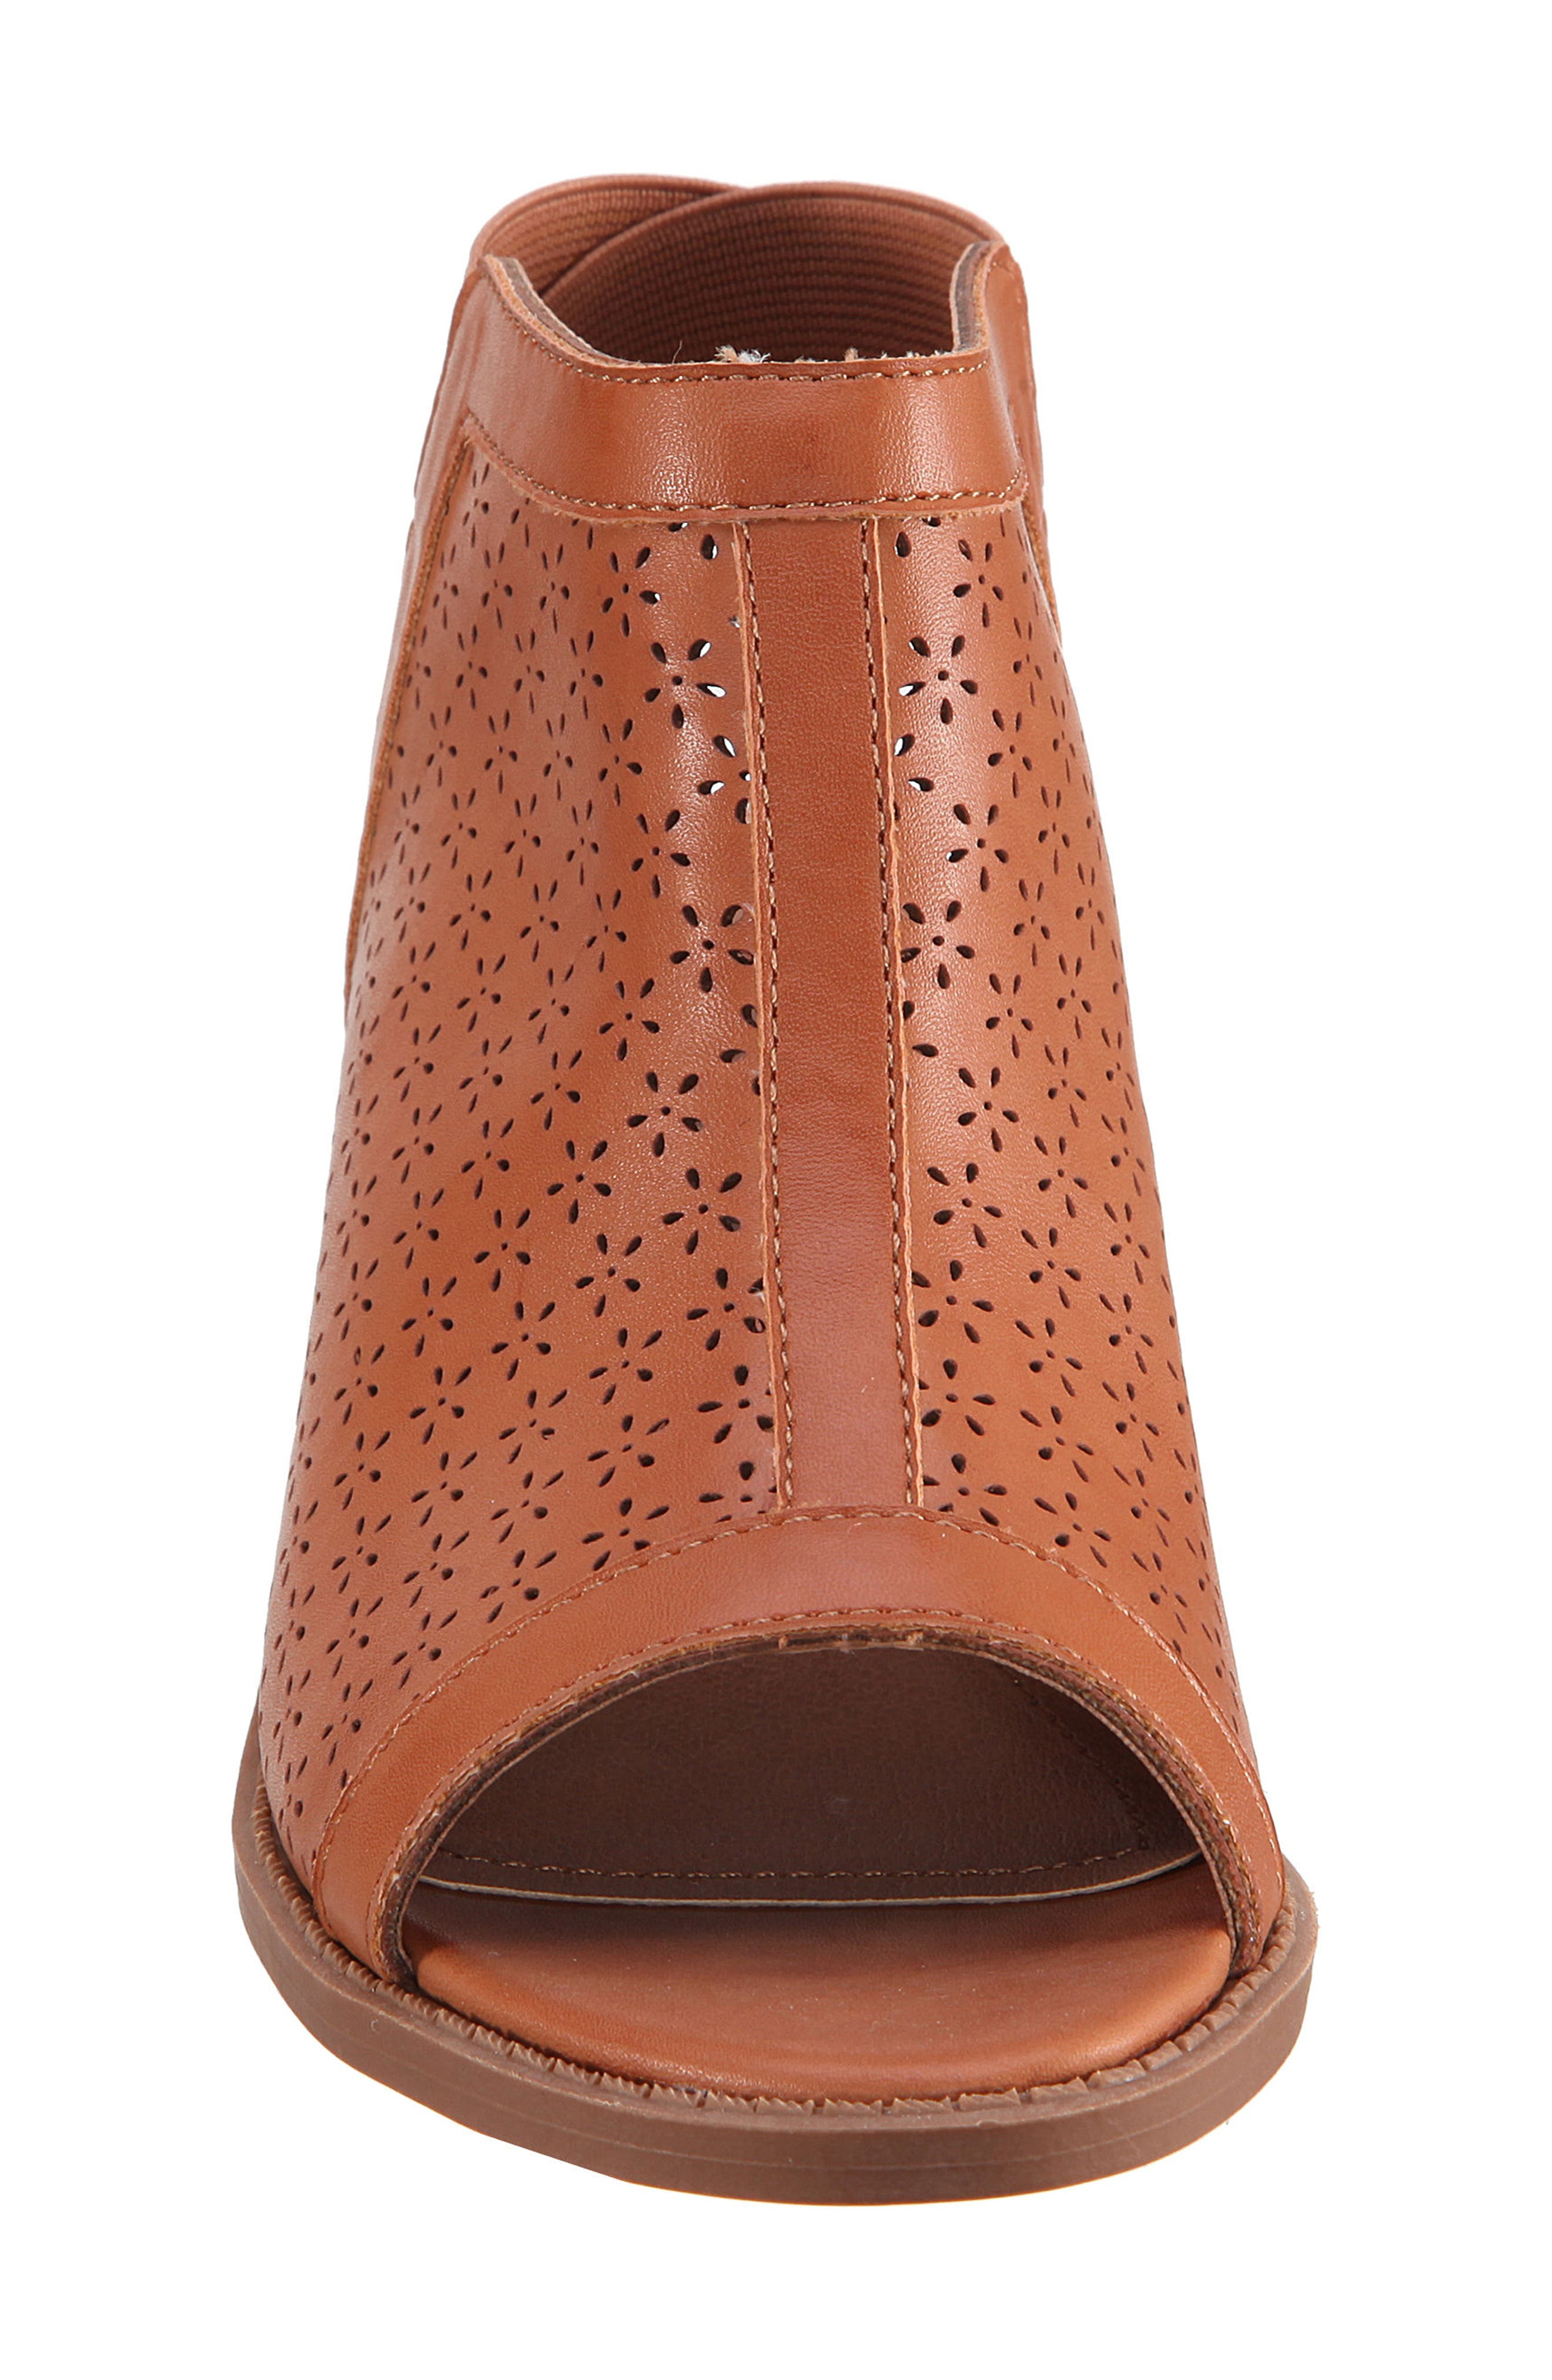 Maya Perforated Peep Toe Bootie,                             Alternate thumbnail 4, color,                             Tan Burnished